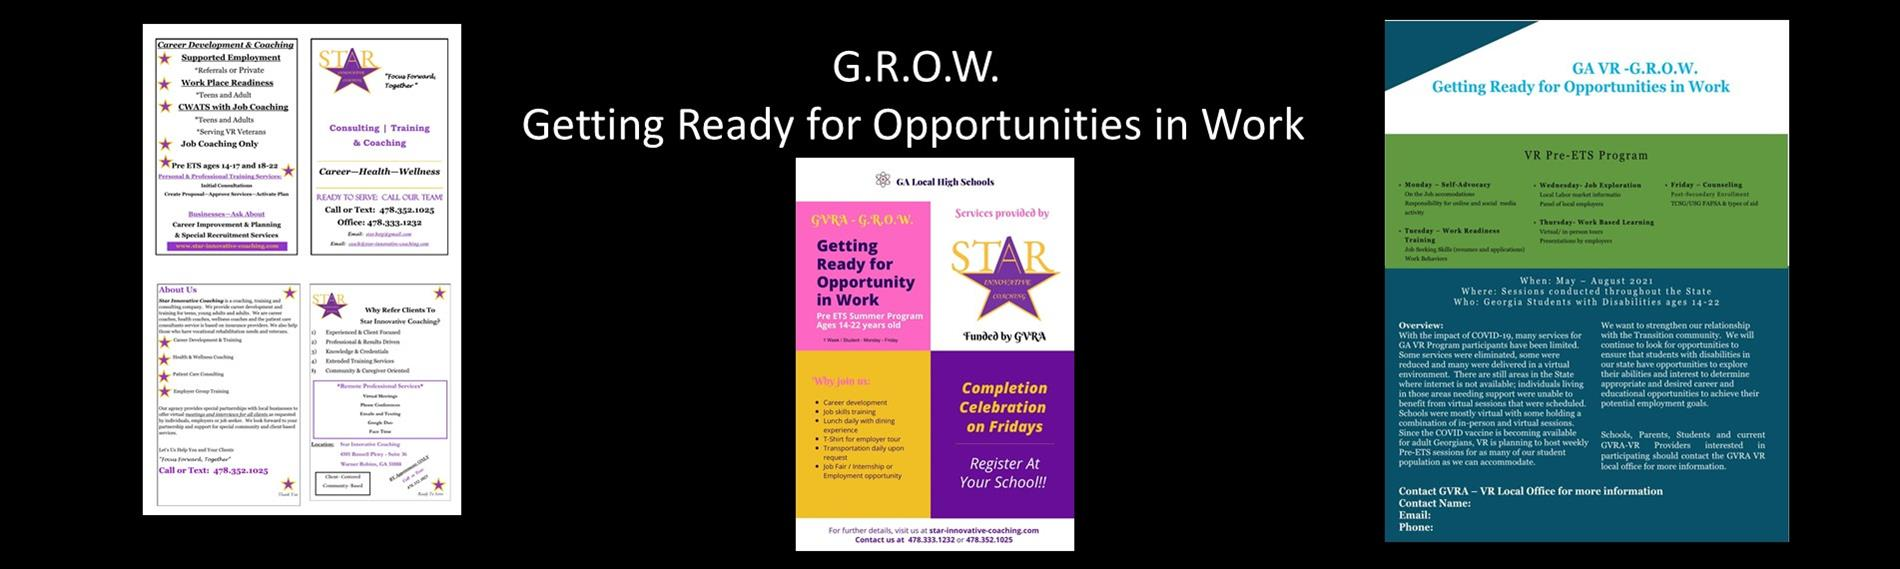 G.R.O.W. - Getting Ready for Opportunities in Work